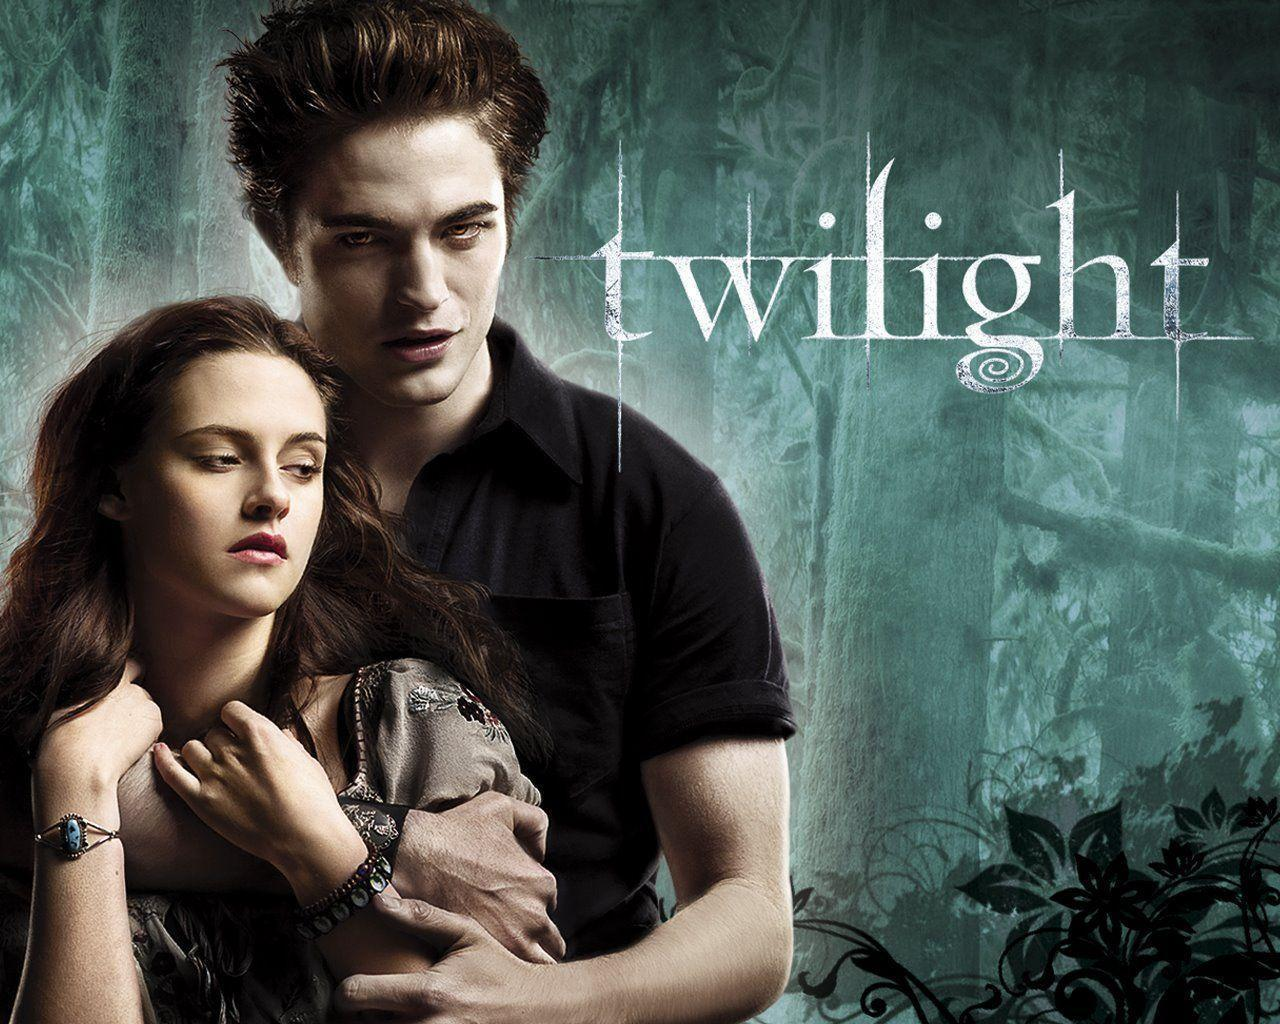 Download twilight full movie online free livinte.